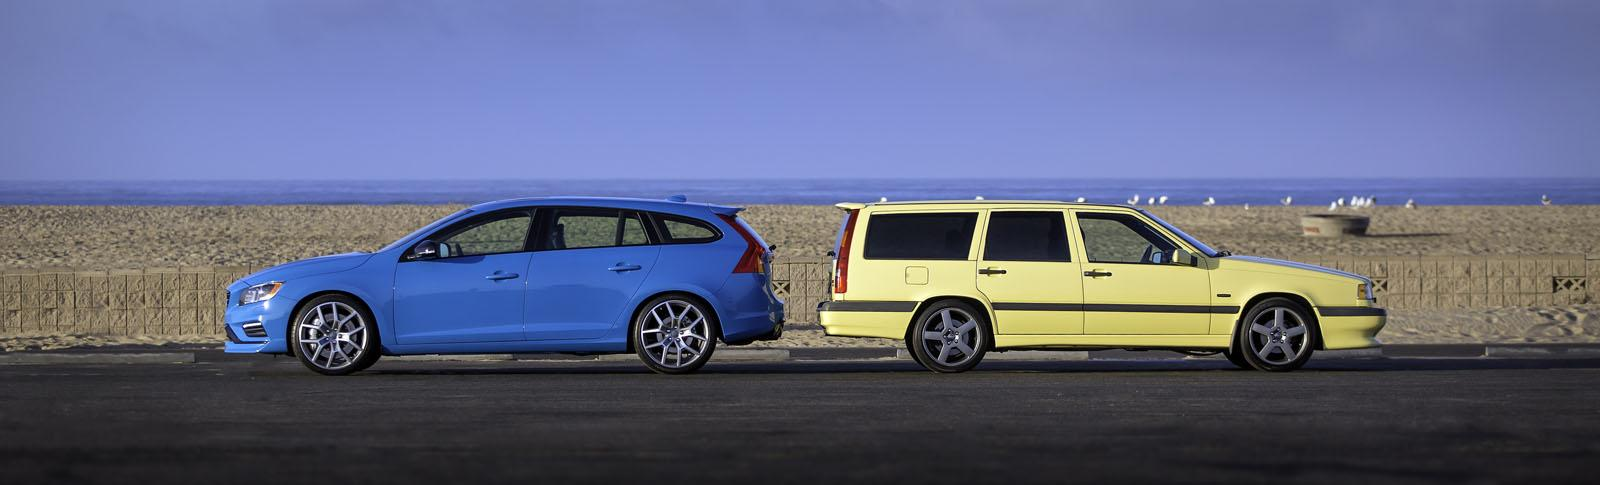 Volvo 855 T5-R Meets V60 Polestar - Out With the Old, In With the New - autoevolution